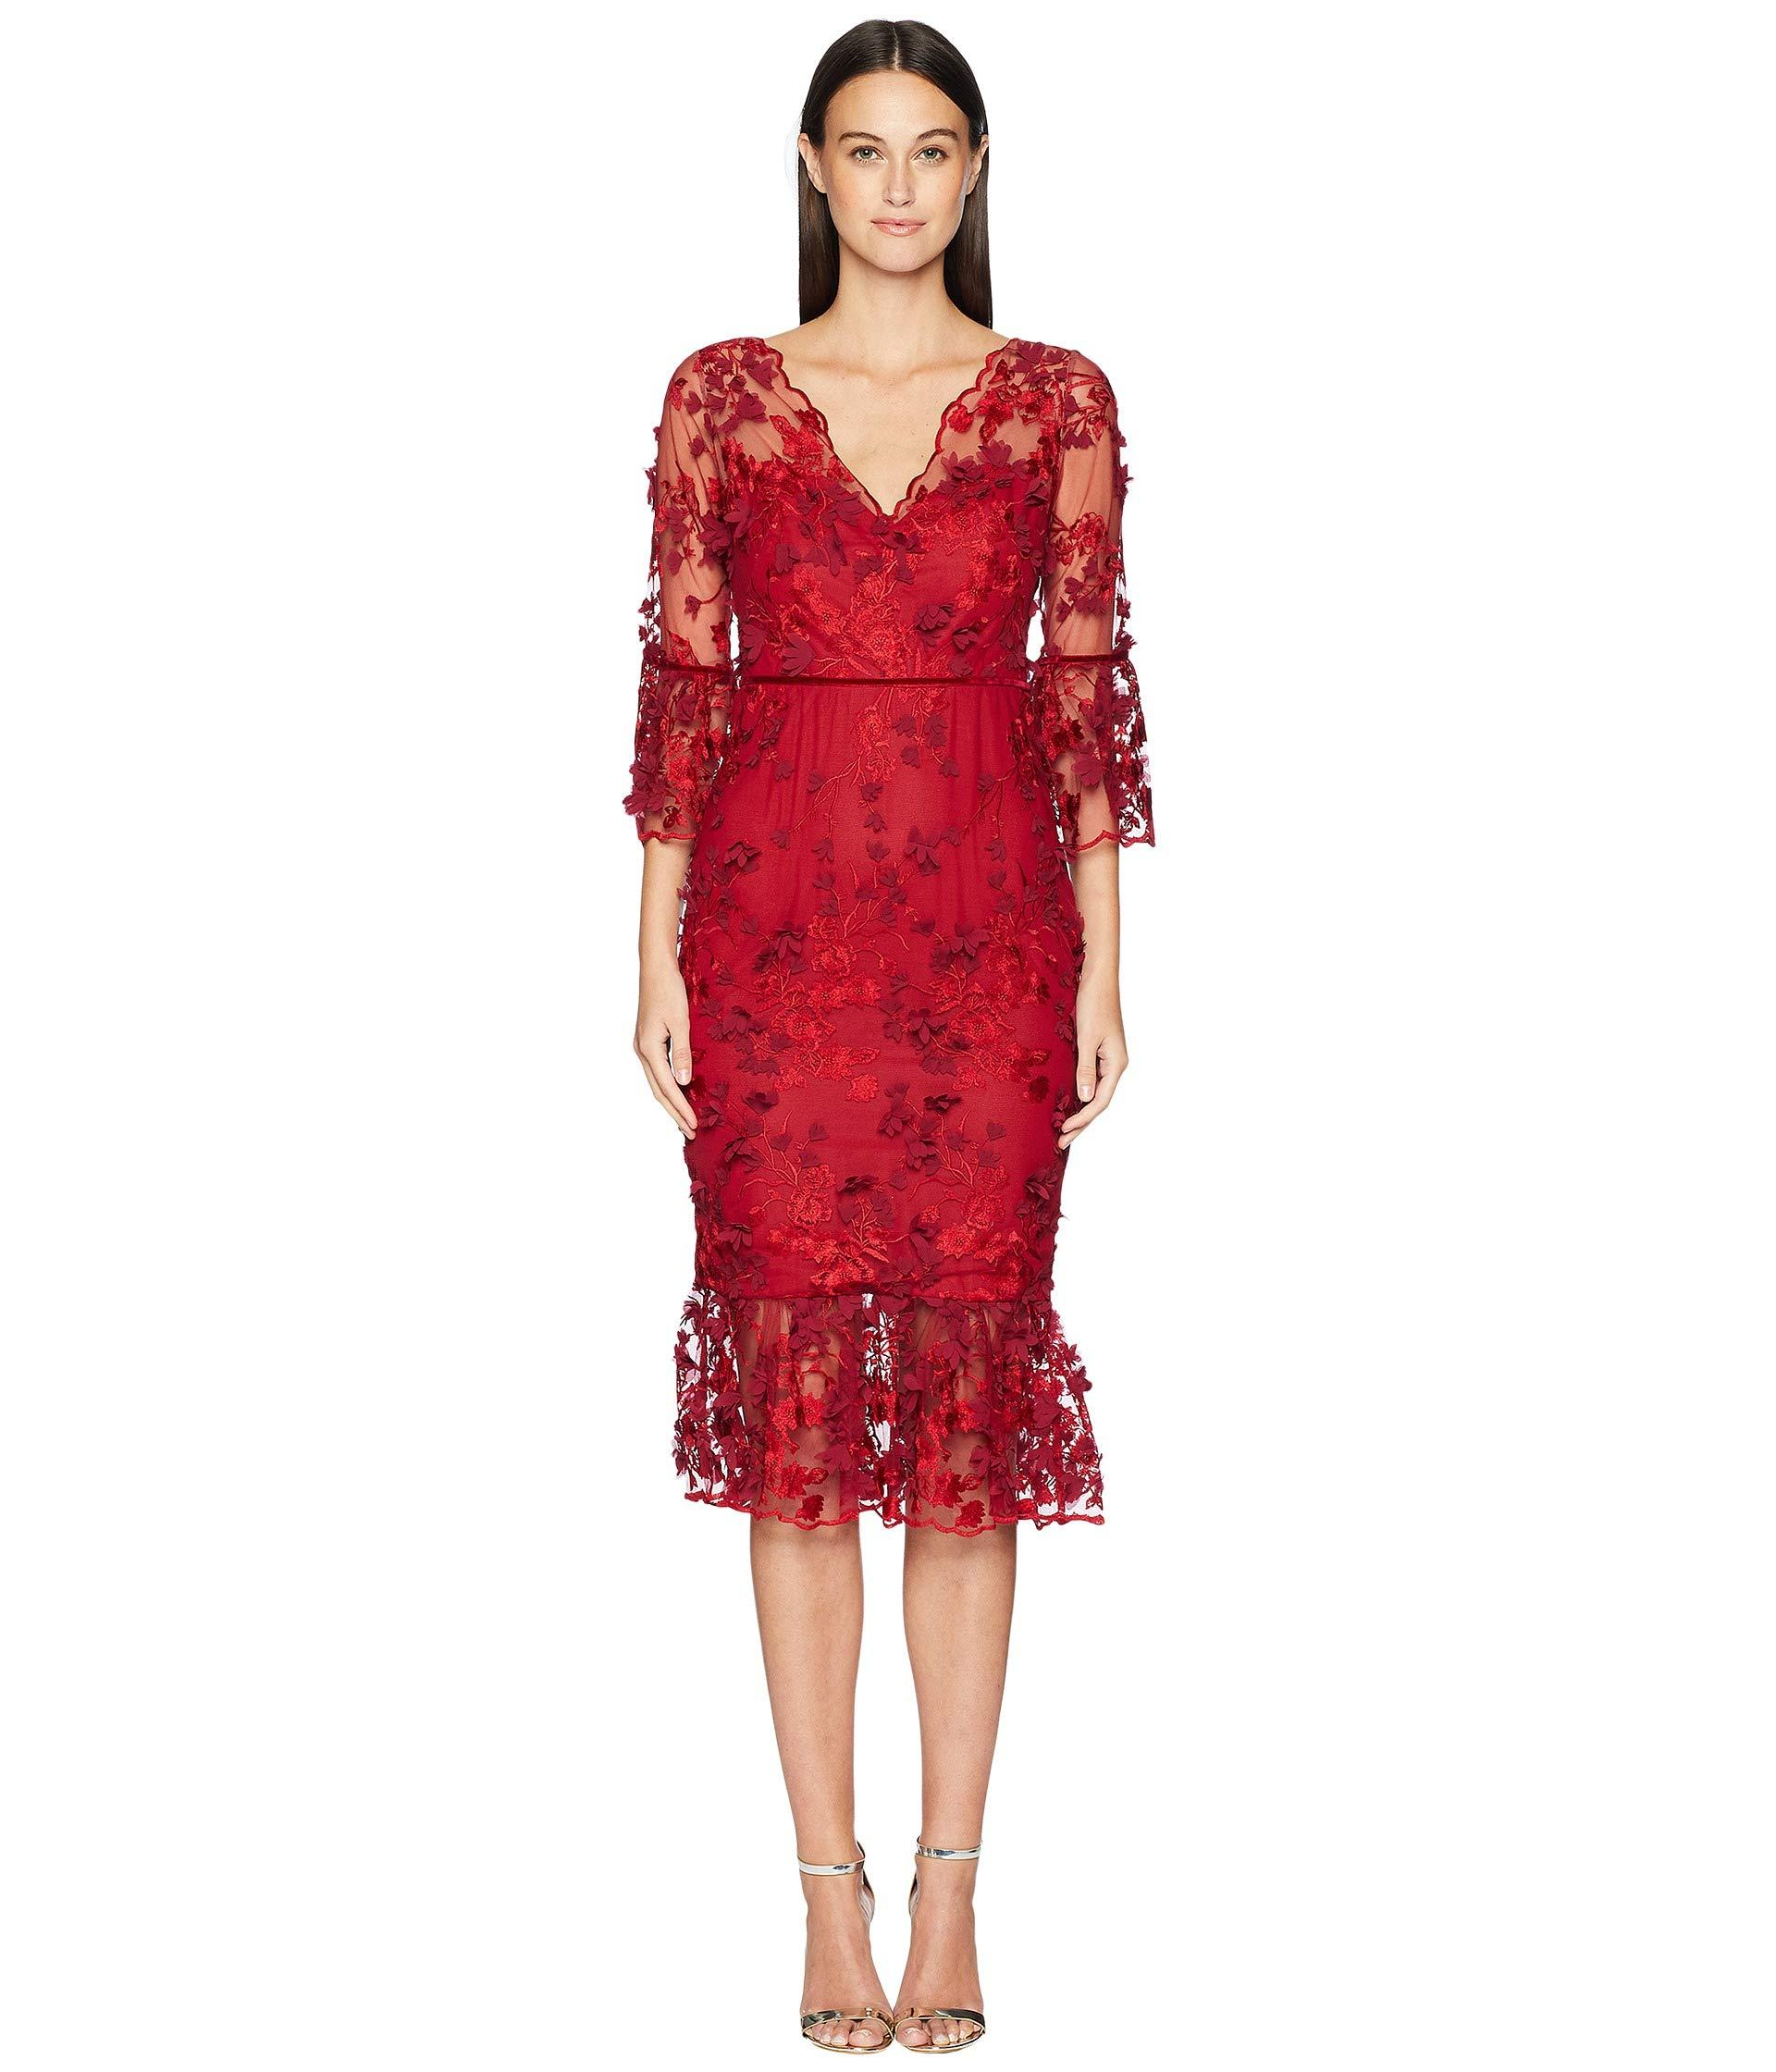 b8e59660b5b Marchesa notte 3 4 Sleeve Embroidered 3d Floral Dress in Red - Save ...